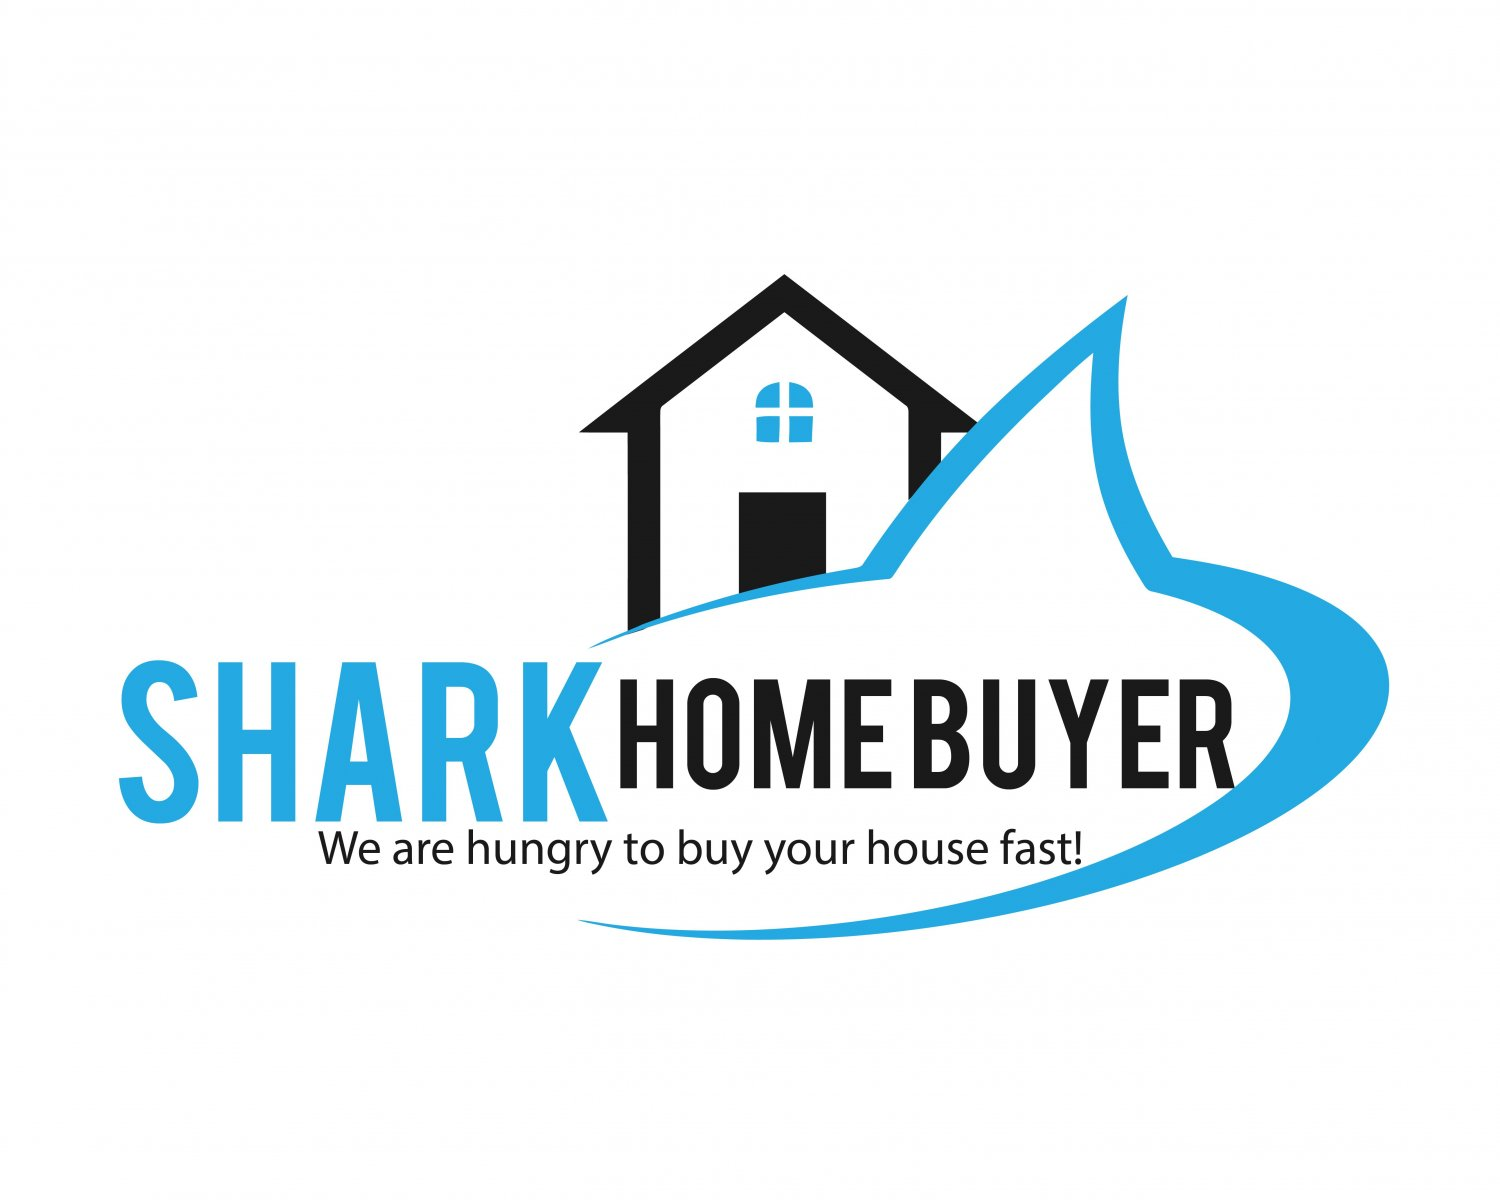 Shark Home Buyer logo